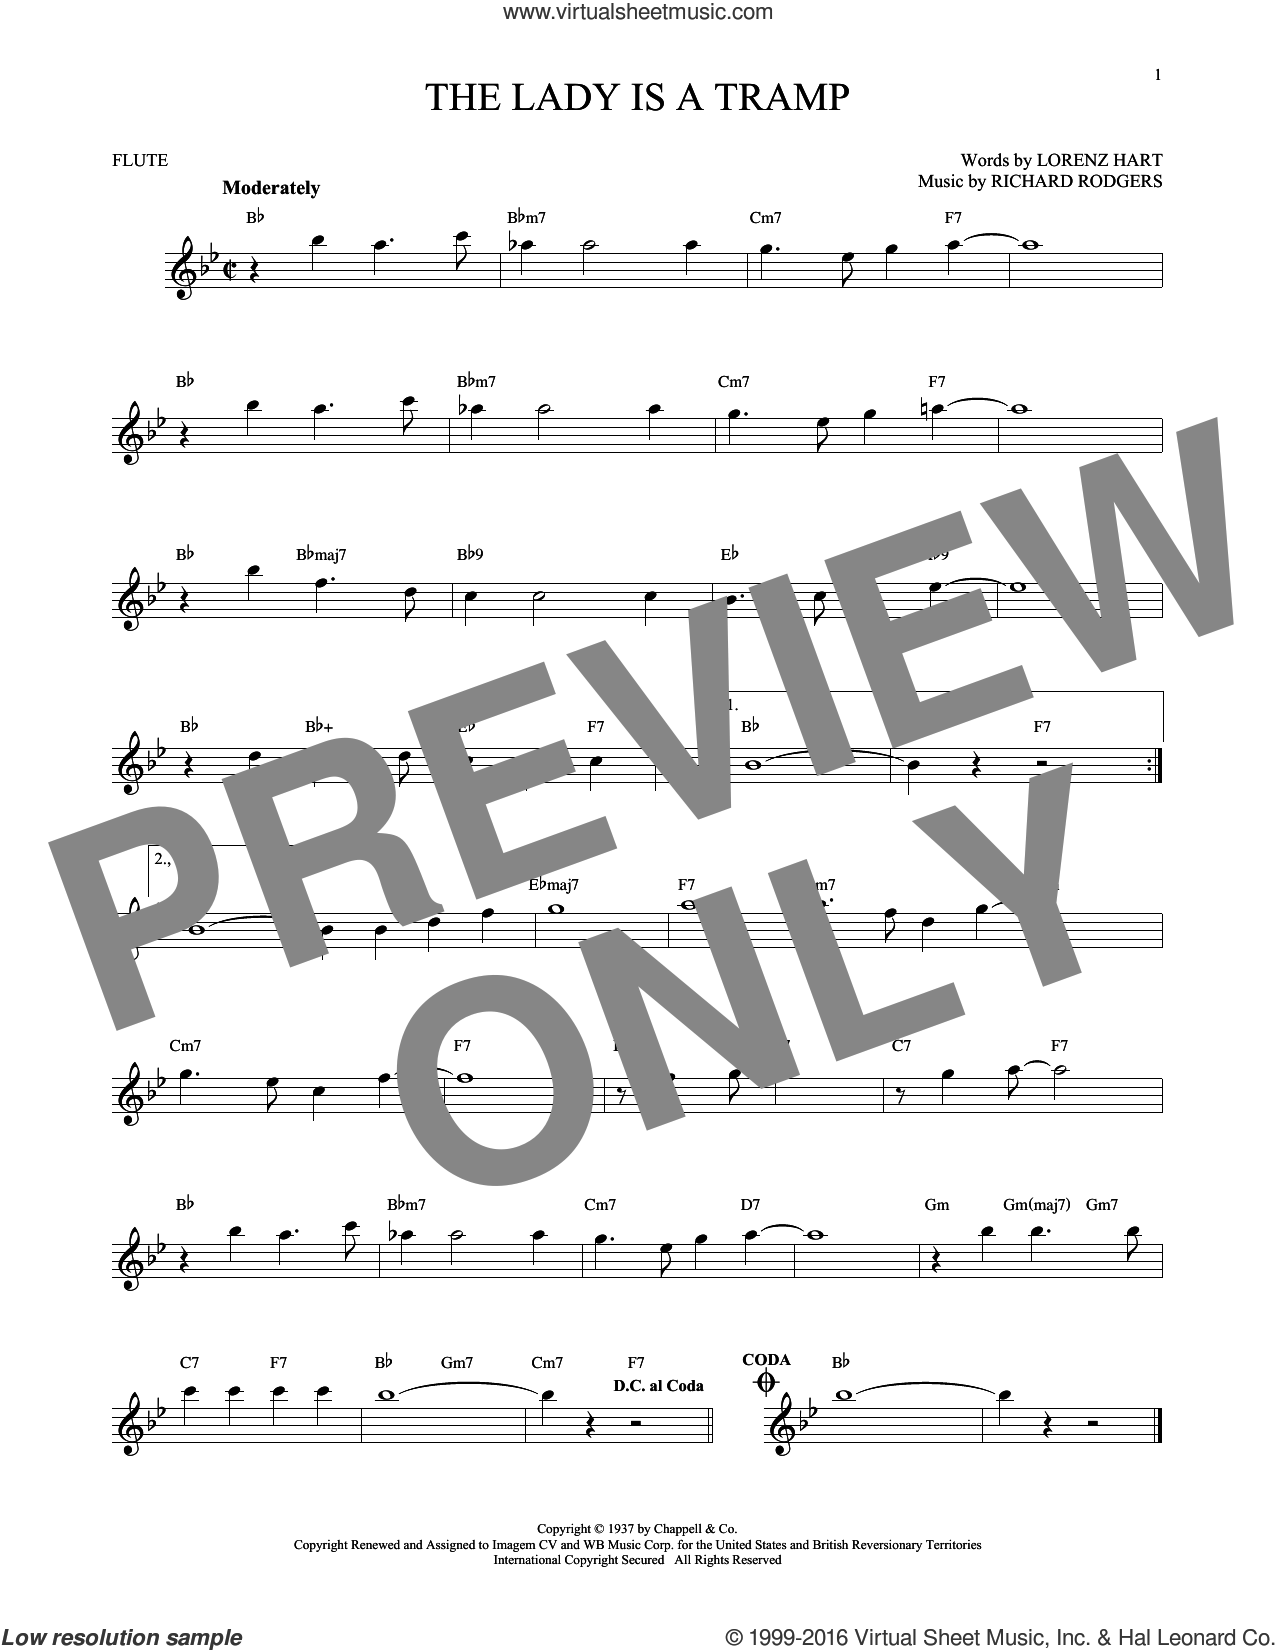 The Lady Is A Tramp sheet music for flute solo by Rodgers & Hart, Lorenz Hart and Richard Rodgers, intermediate skill level